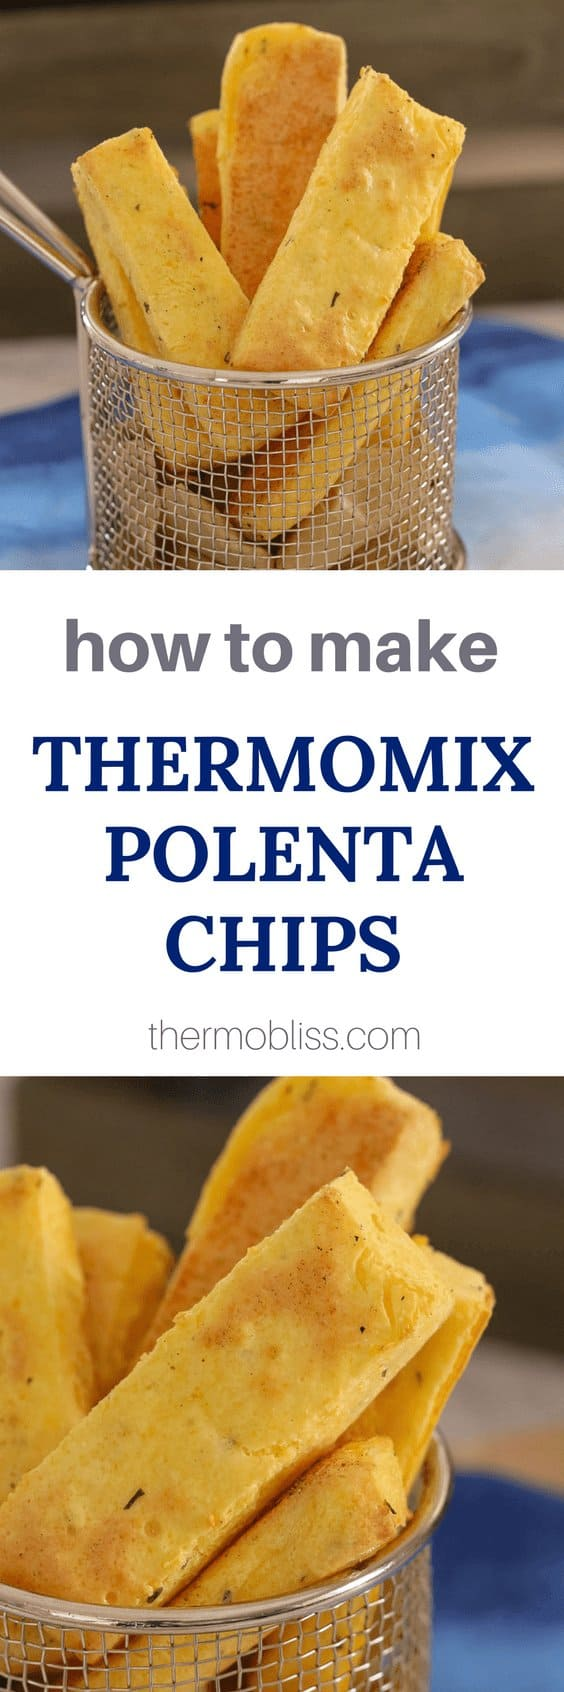 Find out how to make Thermomix polenta chips... they're easy, they're delicious PLUS they're oven-baked!